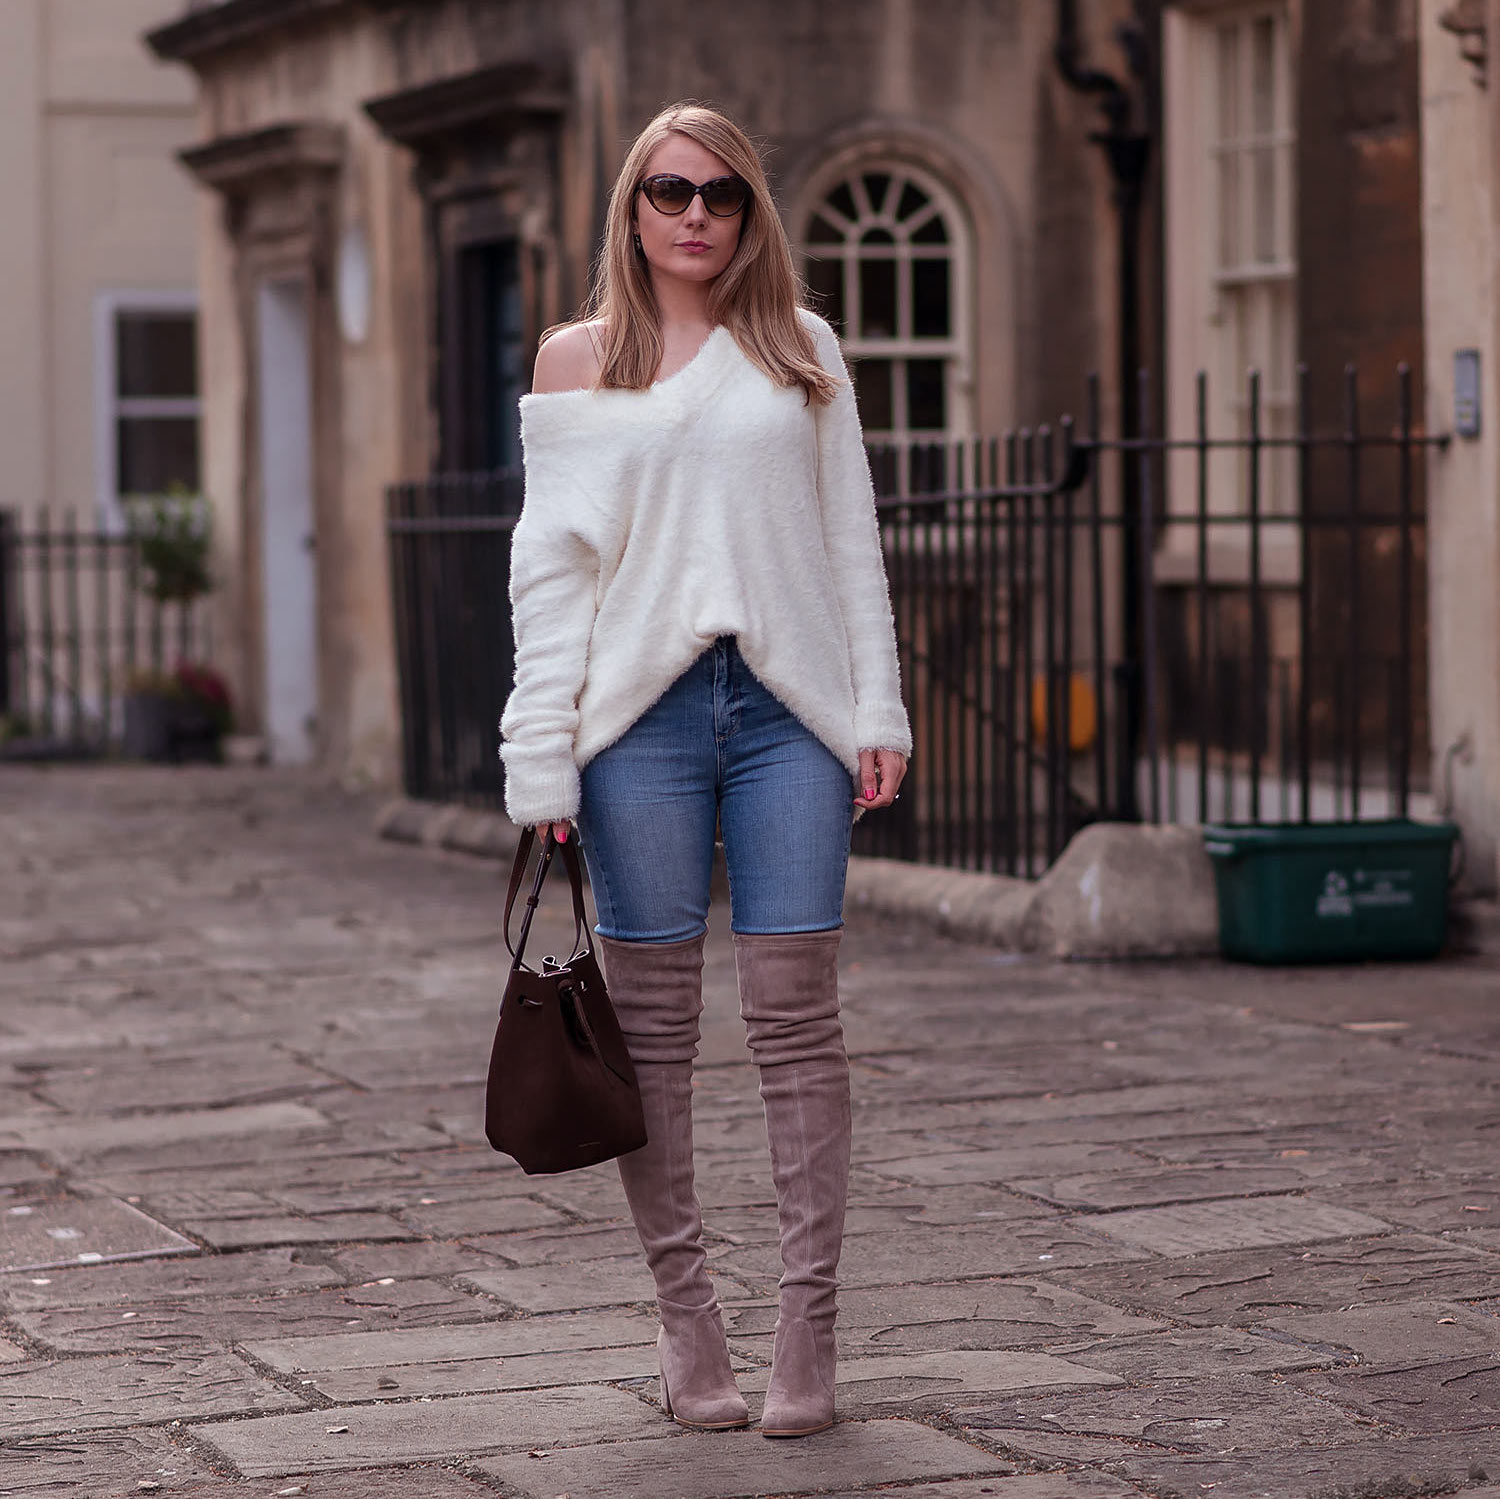 Oversized Knits & Over The Knee Boots